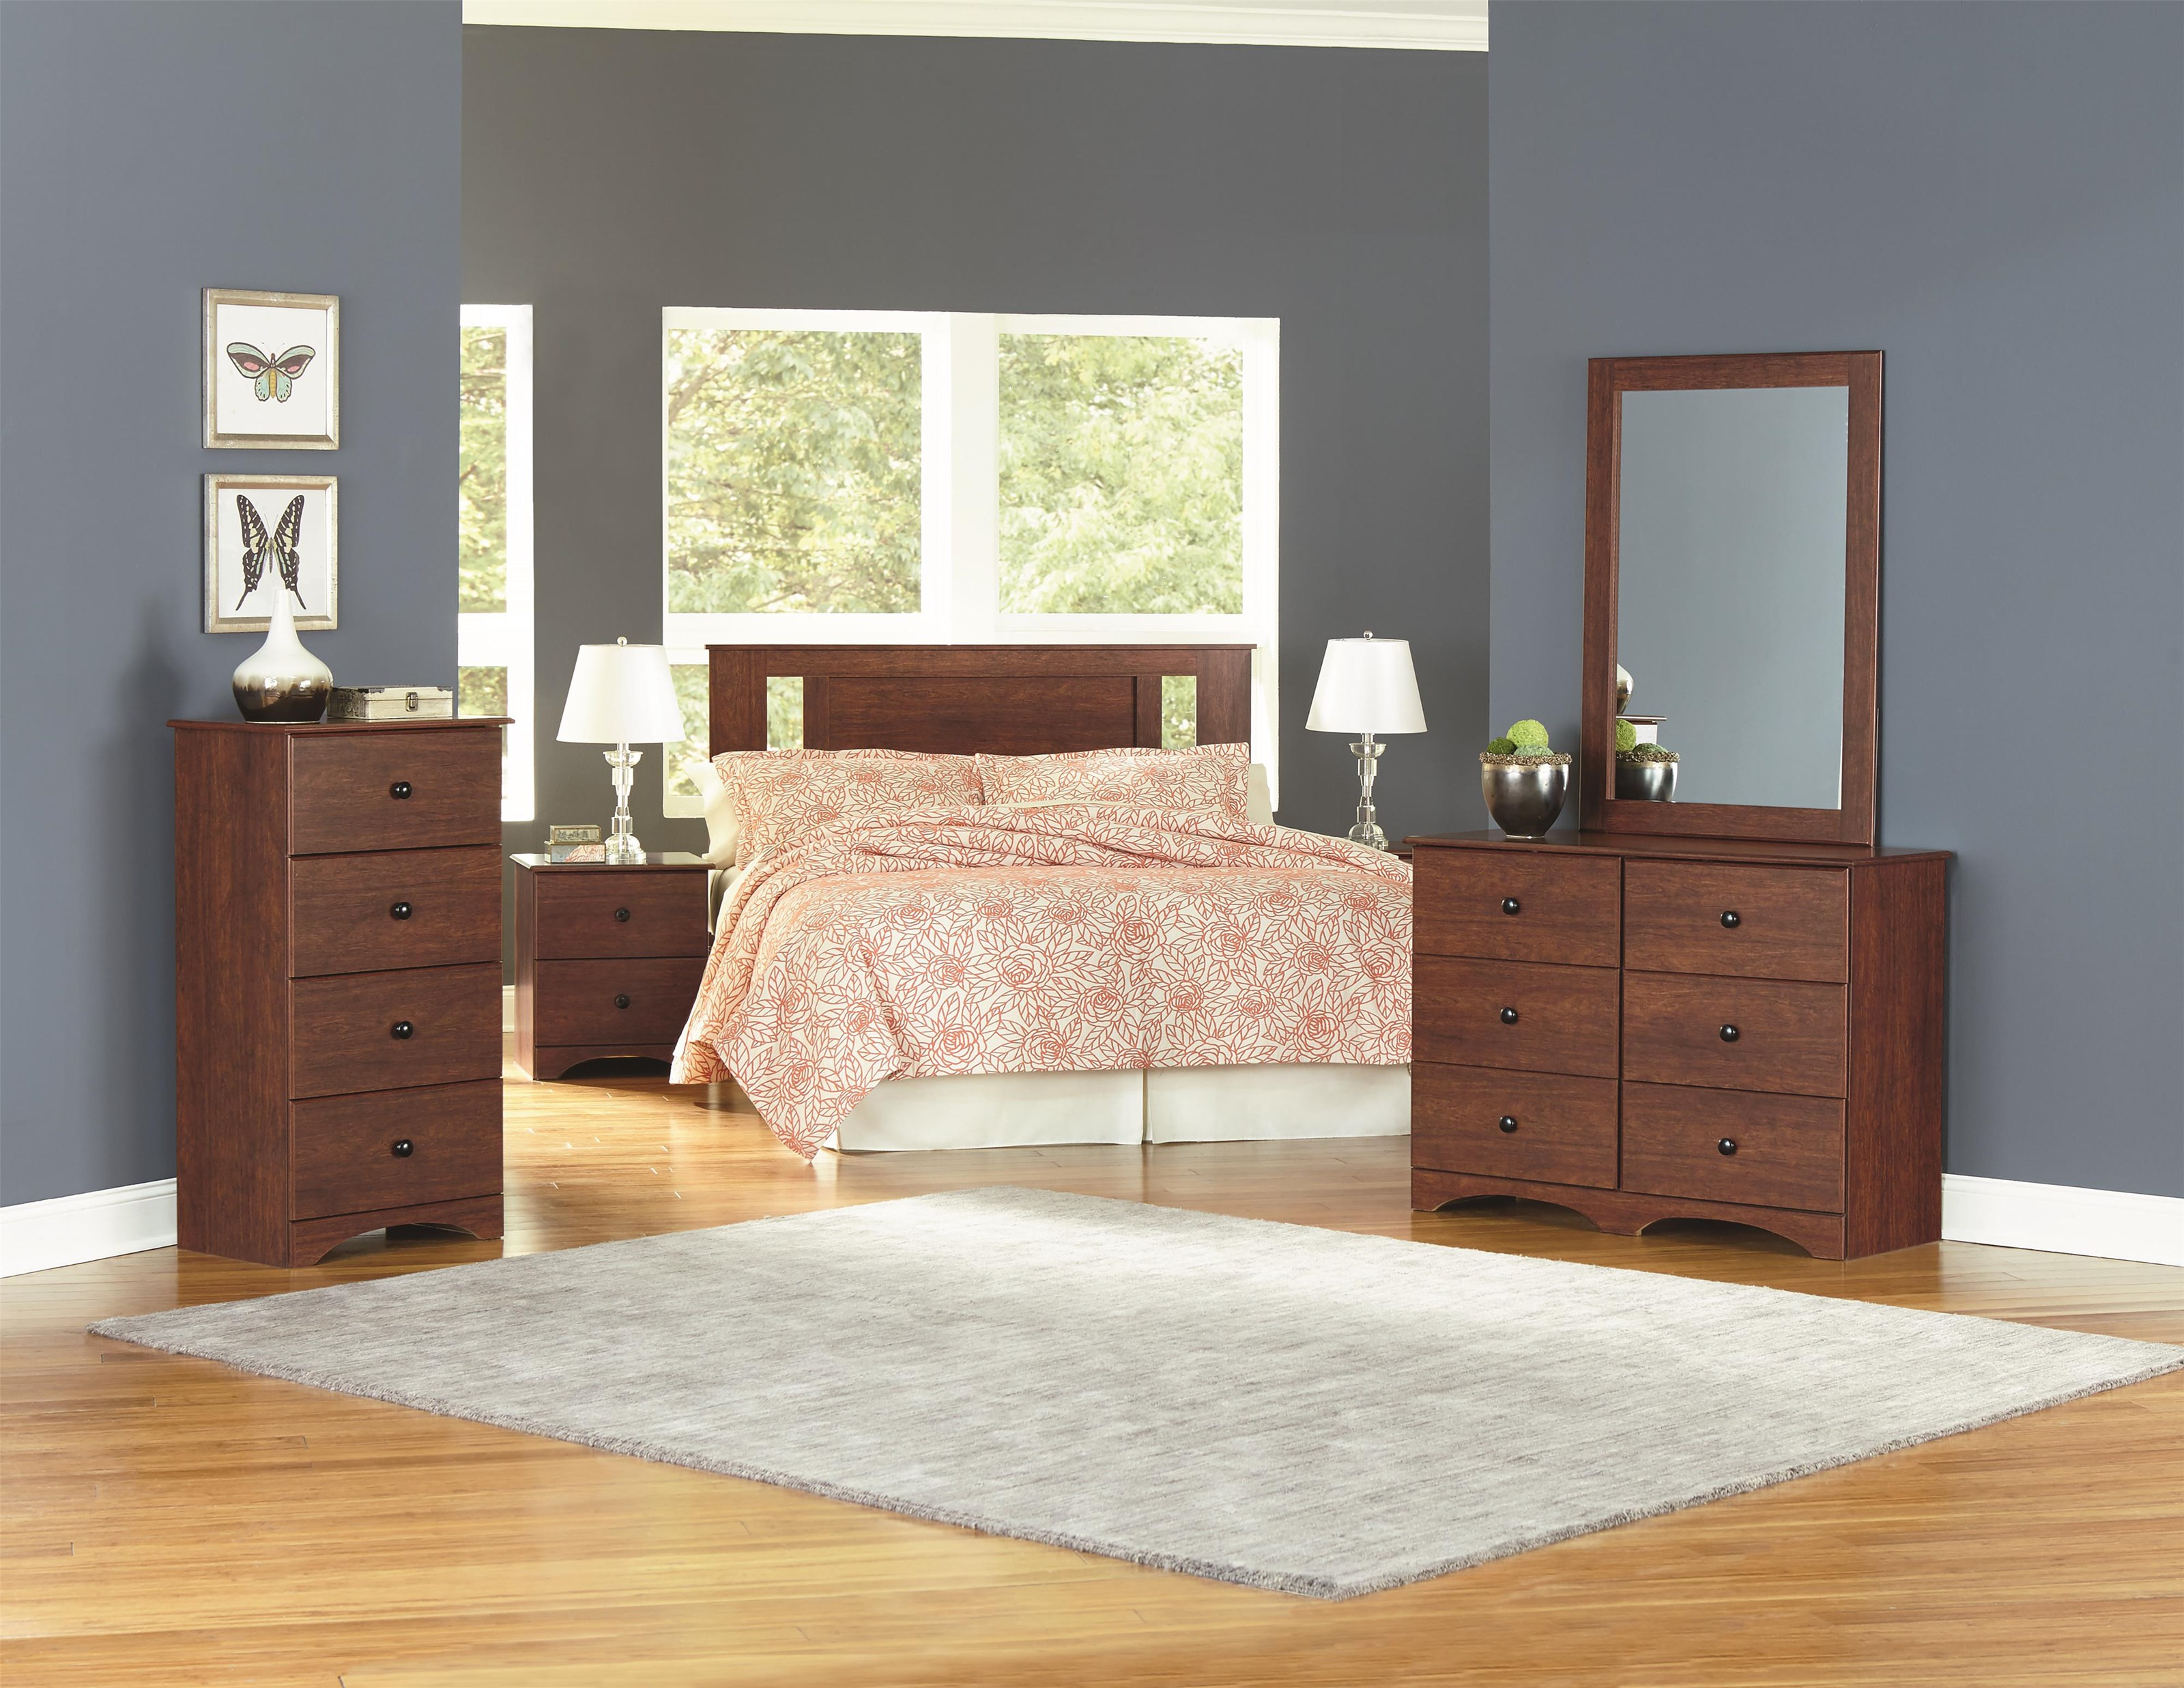 11000 Series Twin Panel Headboard Package by Perdue at Sam Levitz Outlet